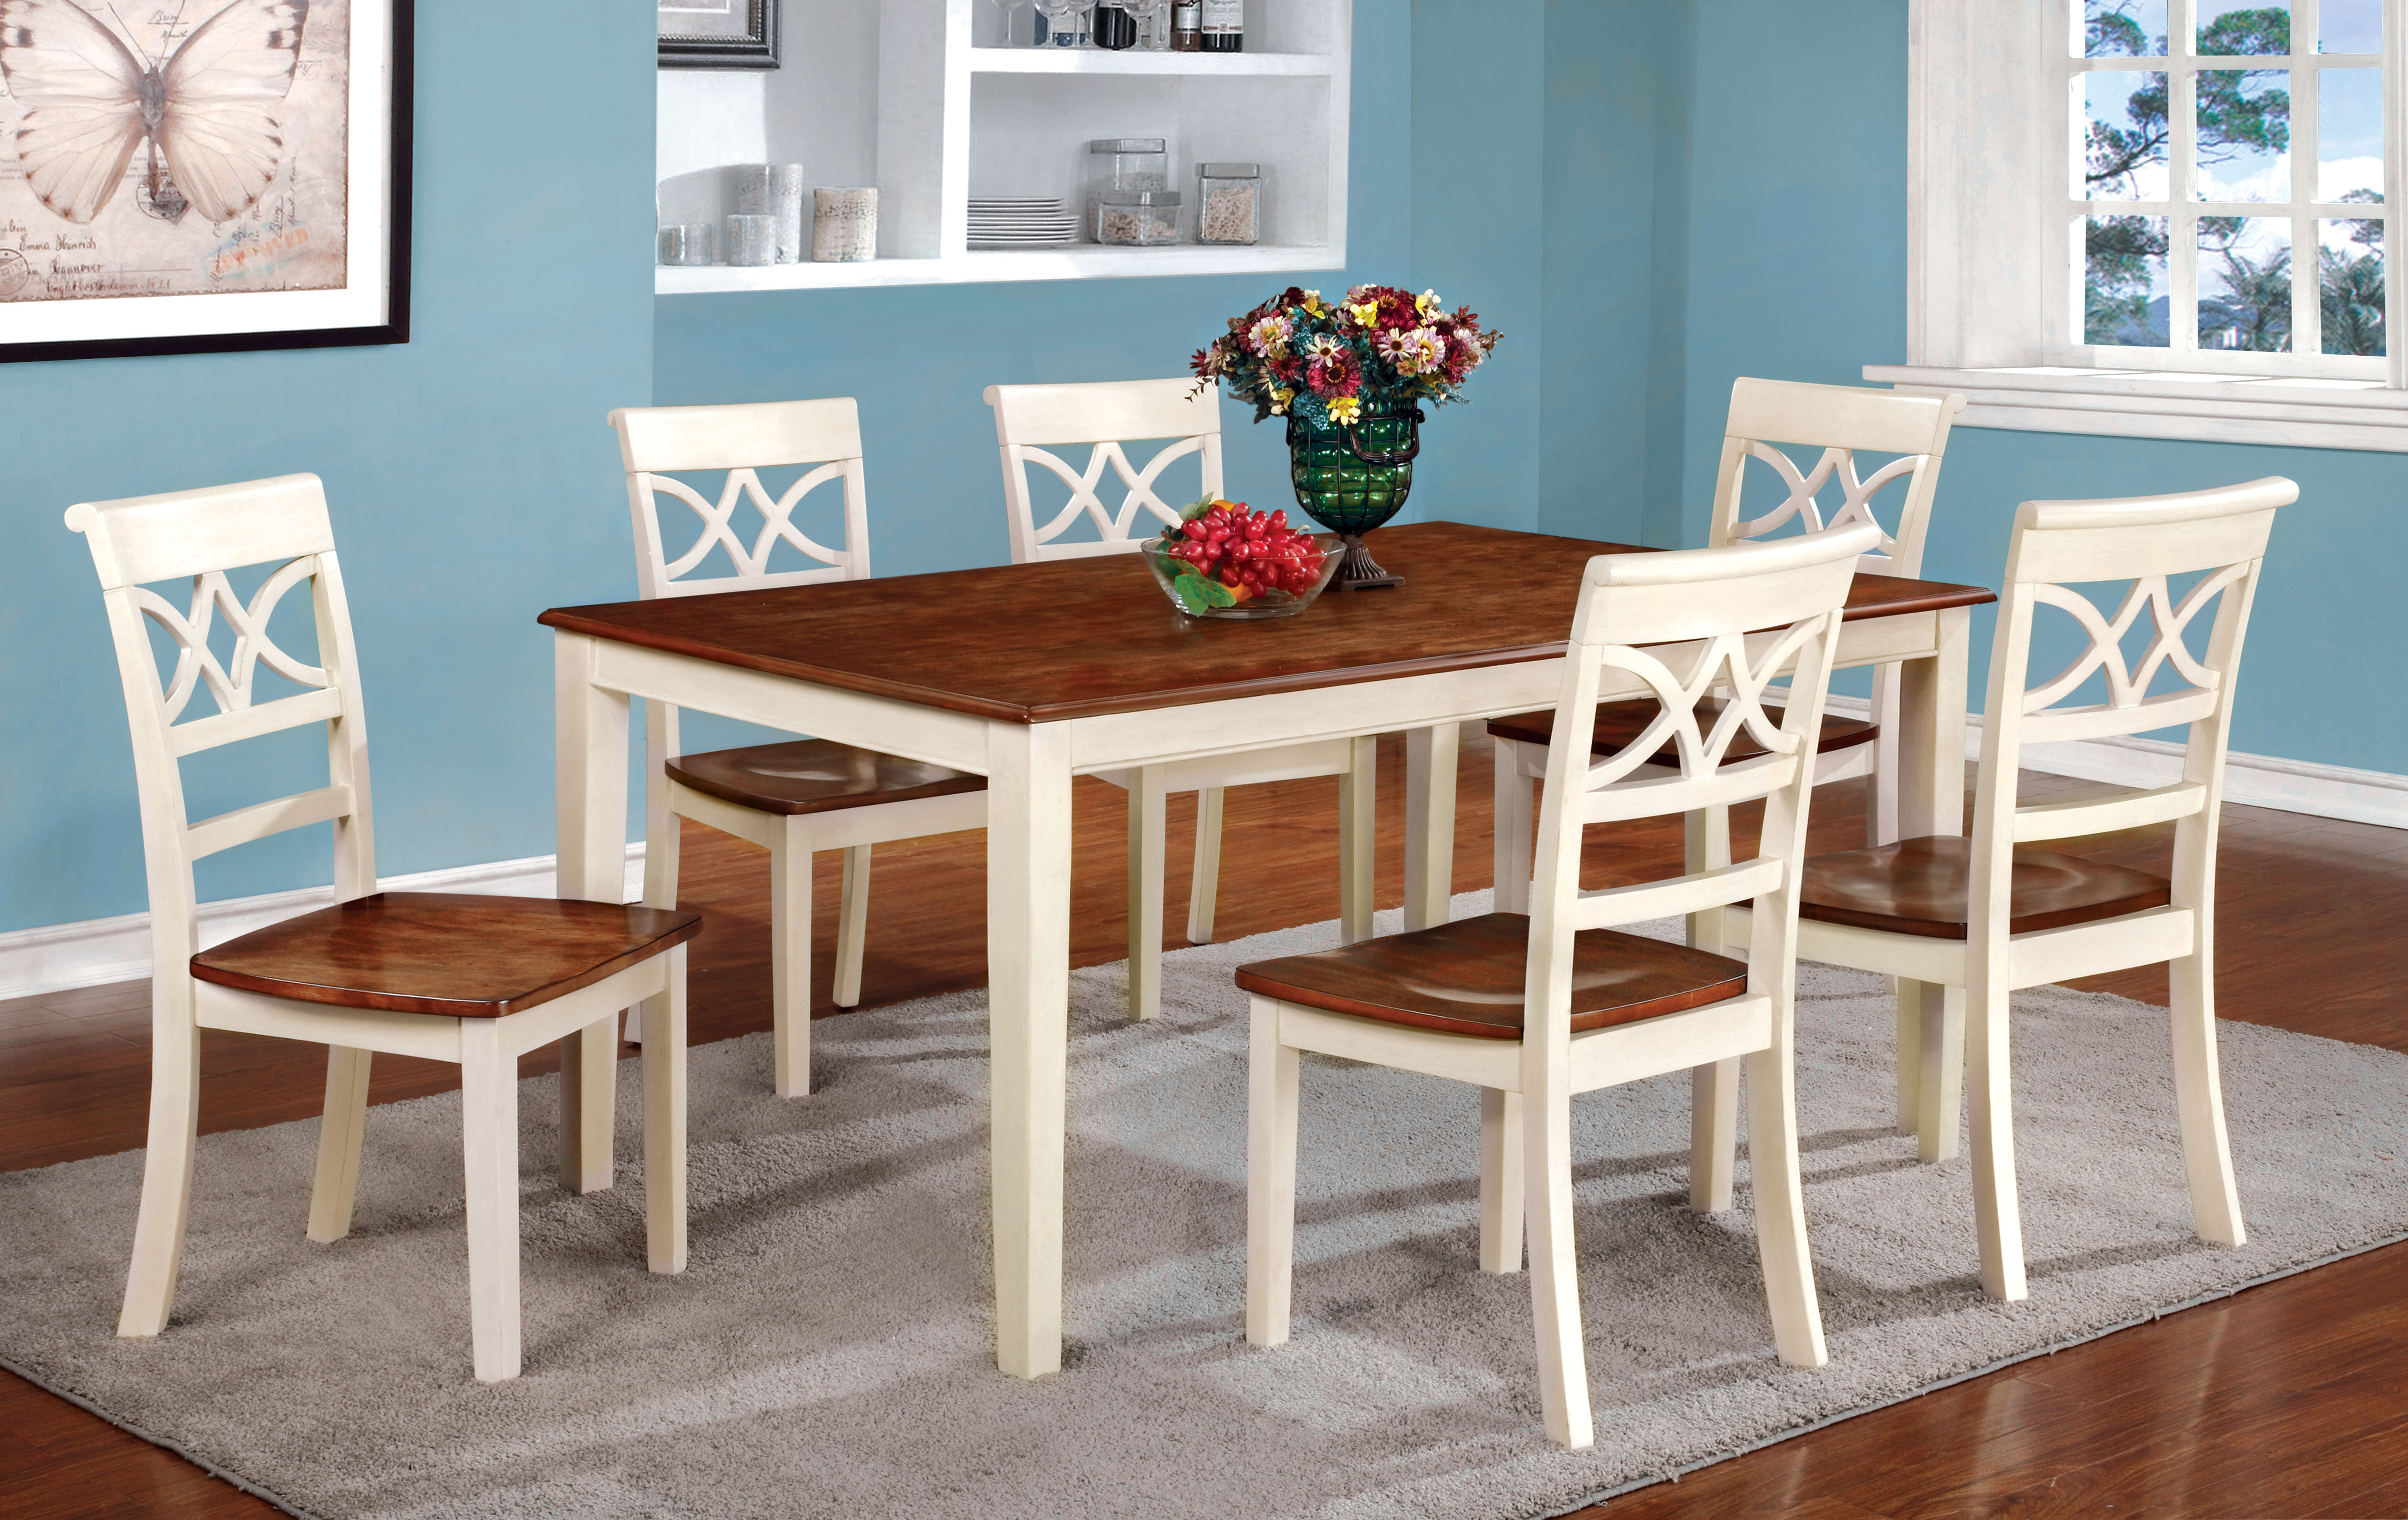 Standard Kitchen Table Top Height Furniture Of America Two-tone Adelle Country Style Dining